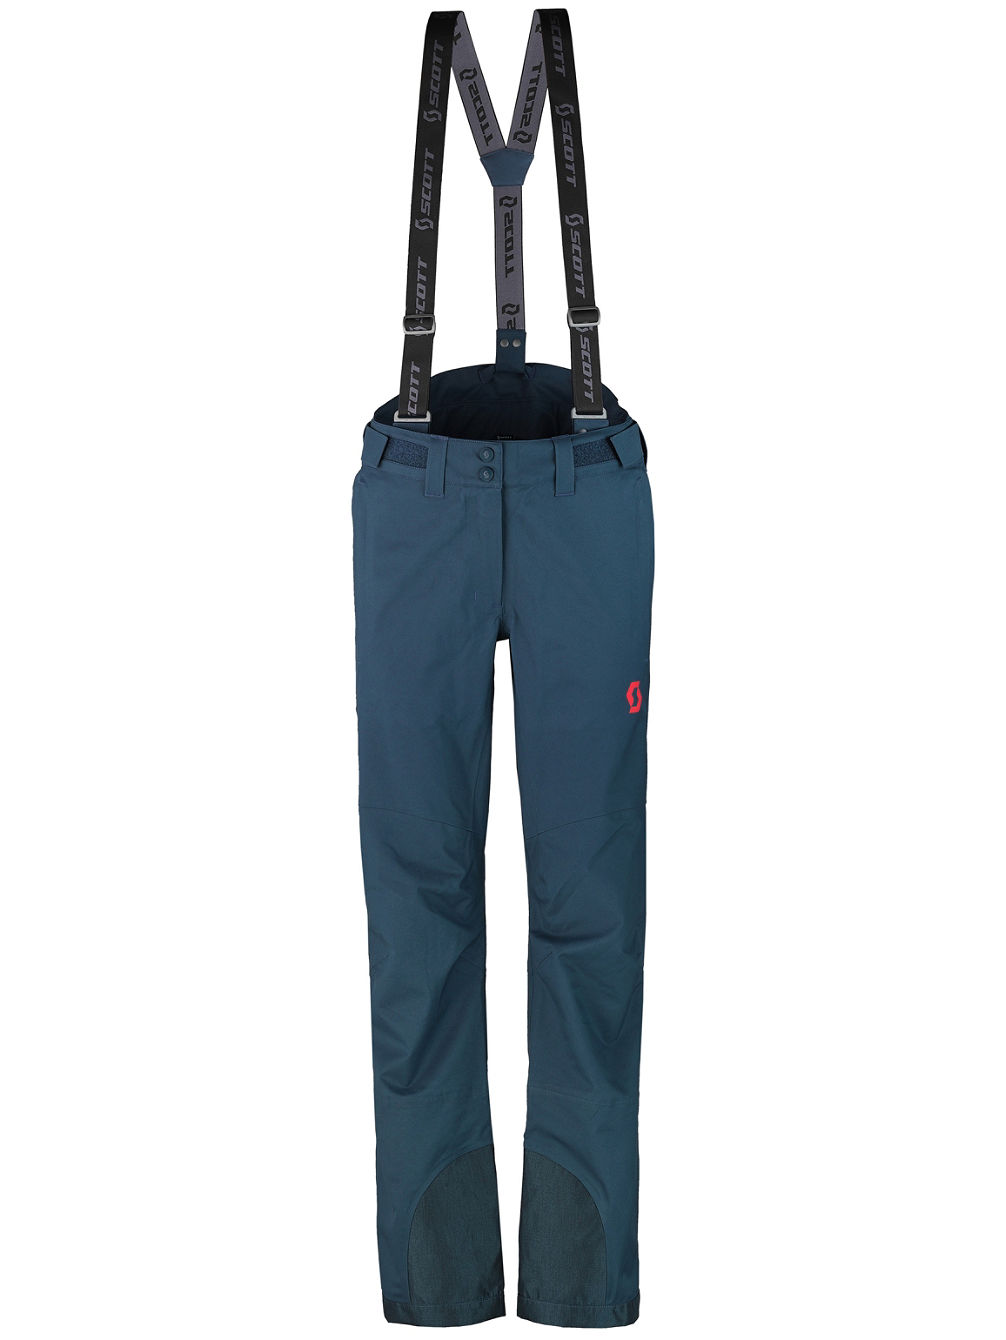 Explorair 3L Pants